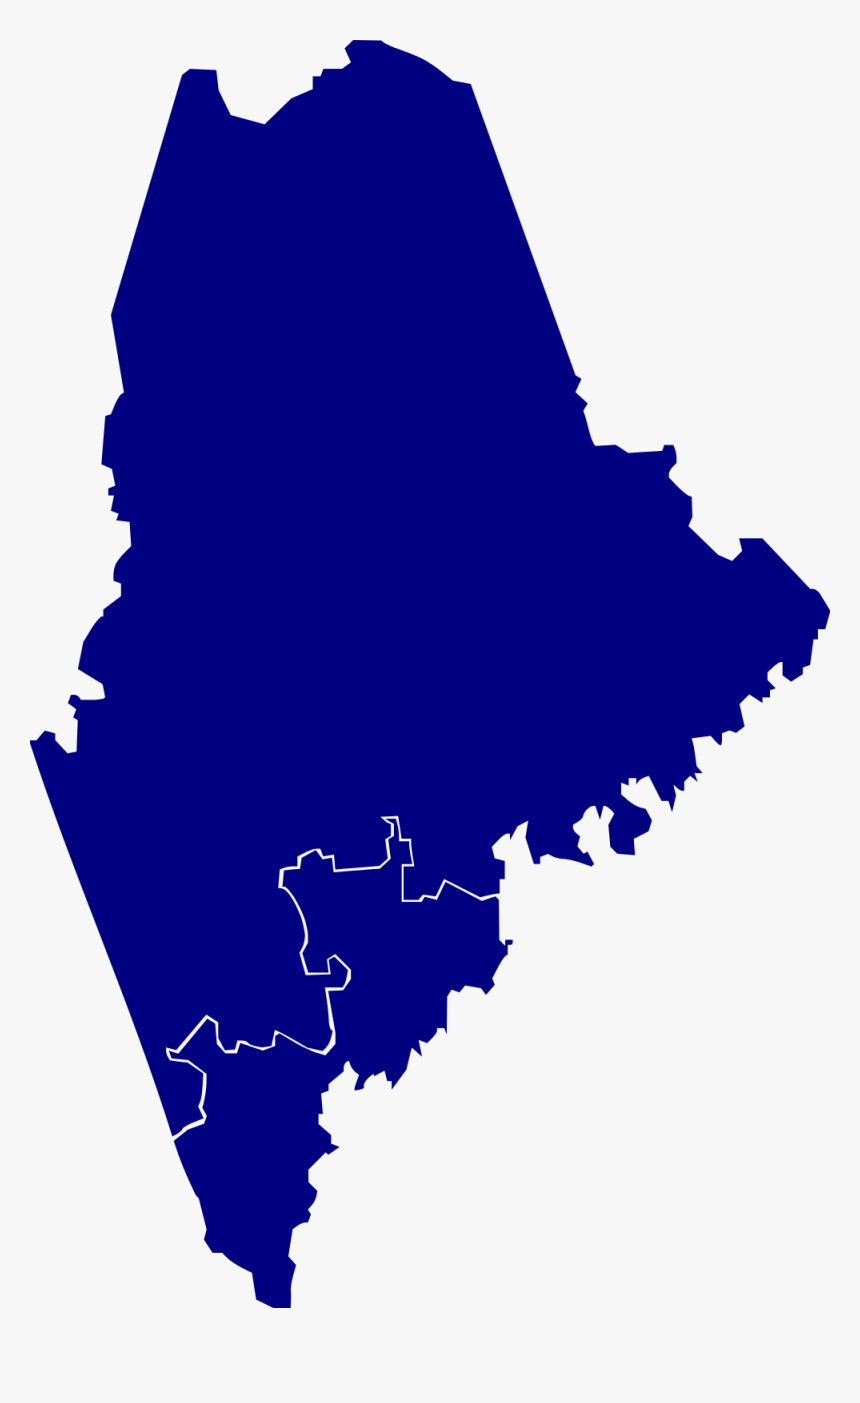 2010 House Elections Maine - Maine Clipart Transparent, HD Png Download, Free Download